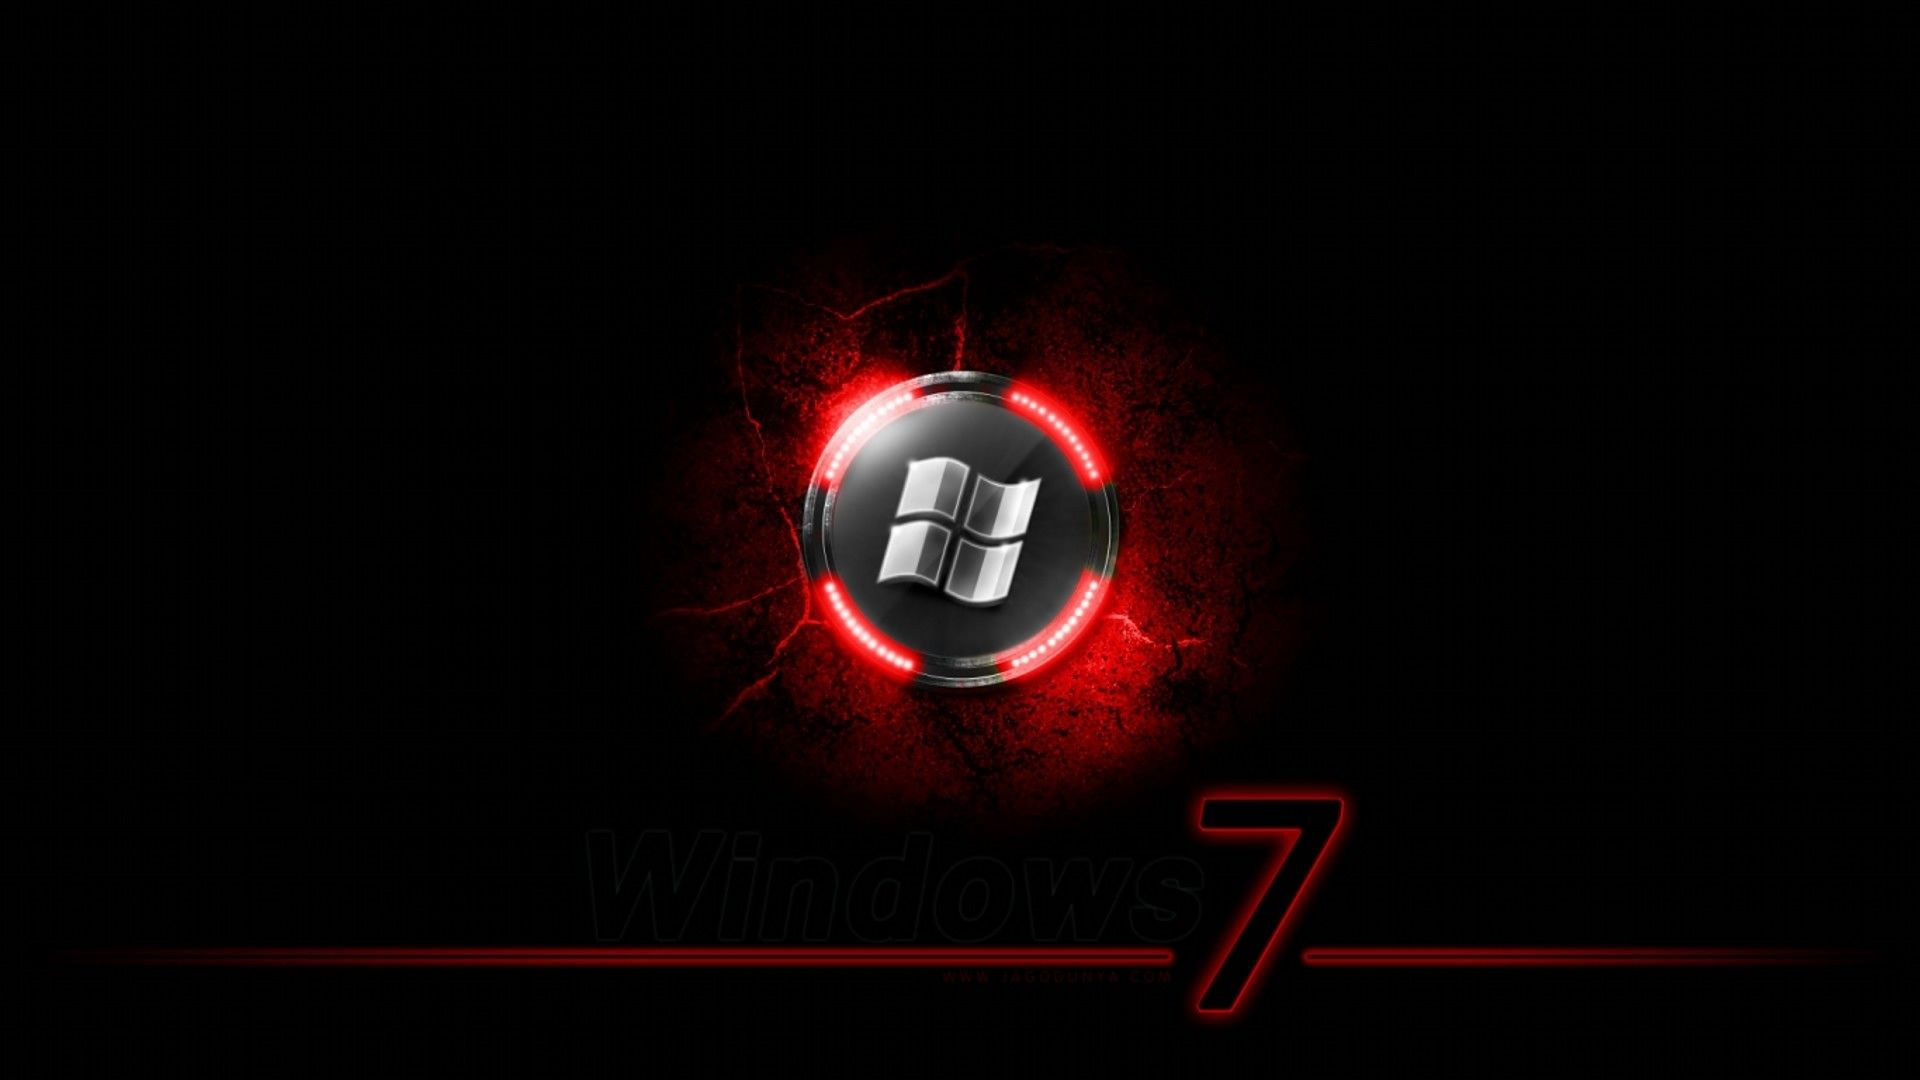 Windows 7 Black N Red Wallpaper Background Hd Wallpaper